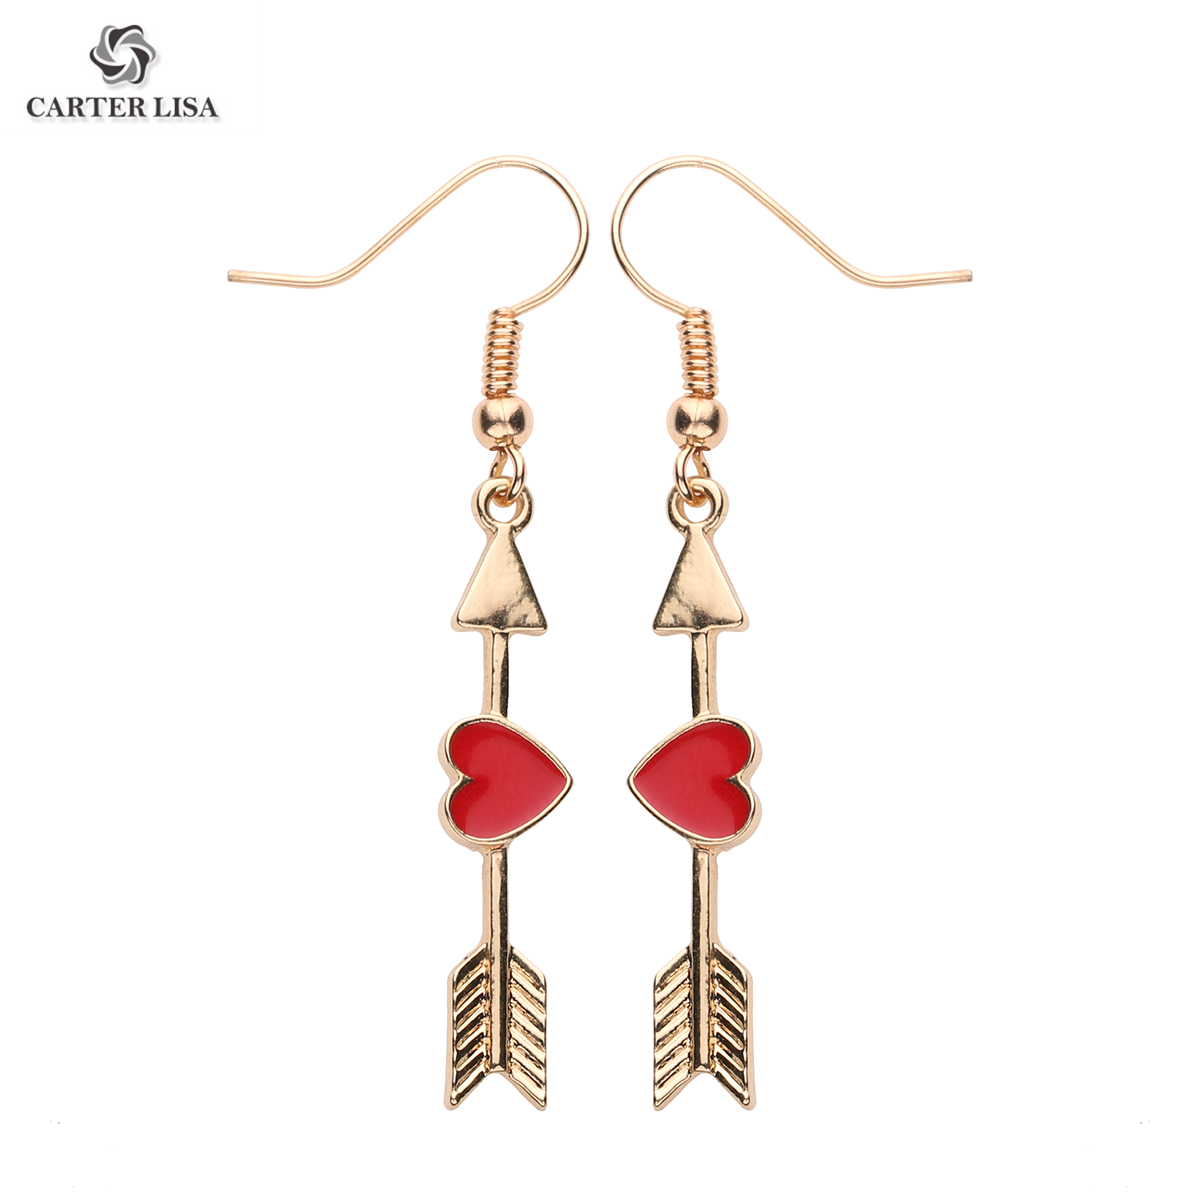 CARTER LISA Romantic Women Arrow Heart Earrings Elegance Long Drop Earrings For Lovers Valentine's Day Gift Couple Anniversary